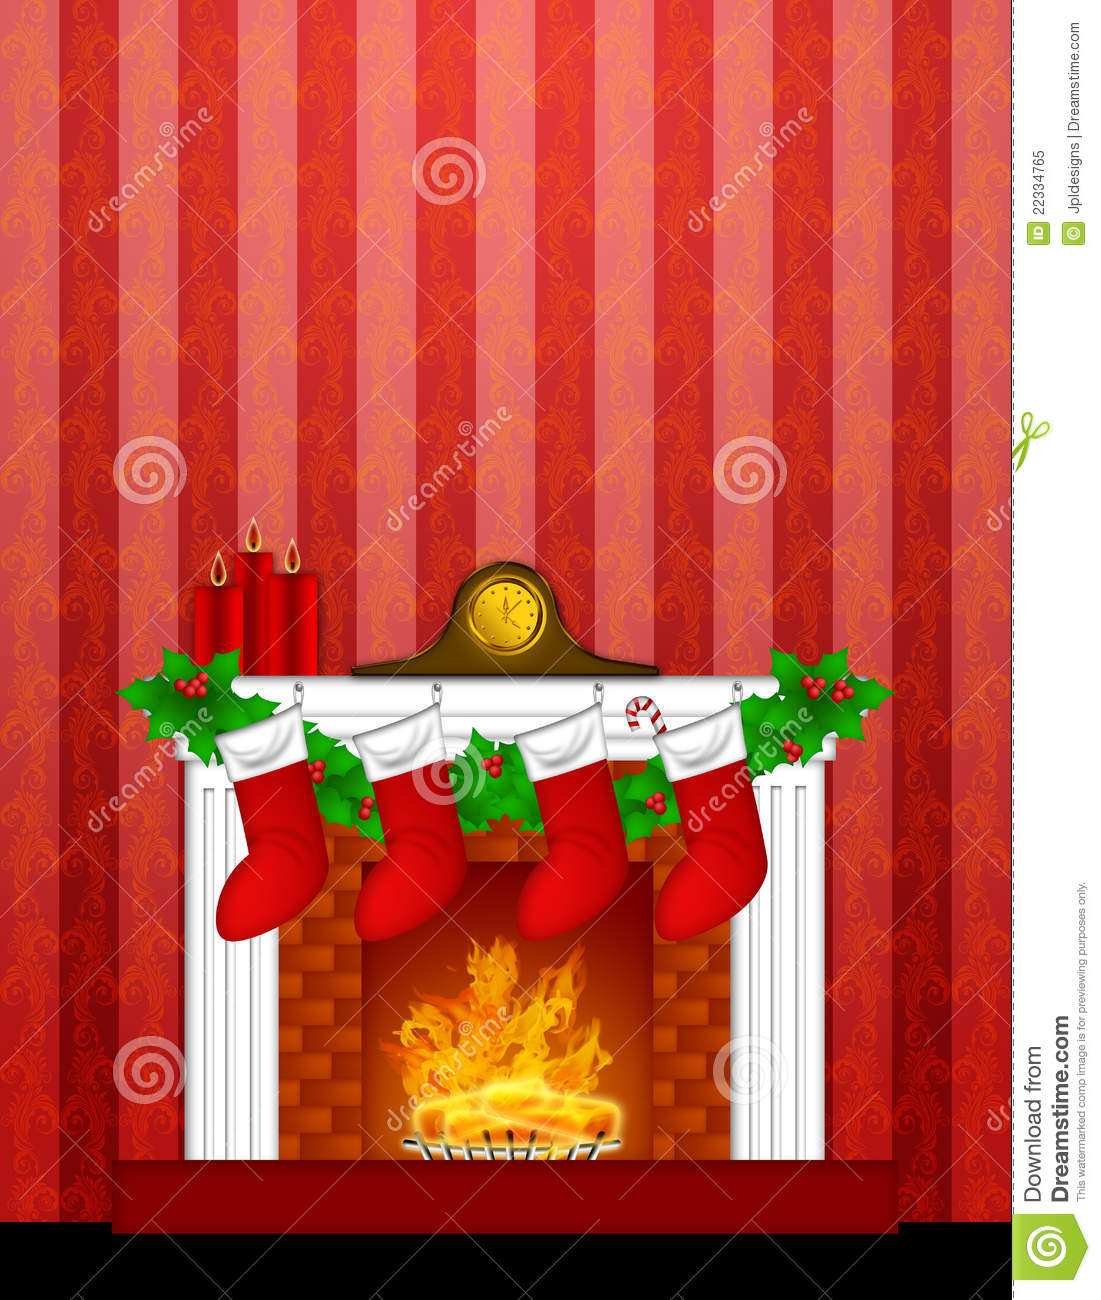 Fireplace Christmas Decoration Stockings Wallpaper Royalty